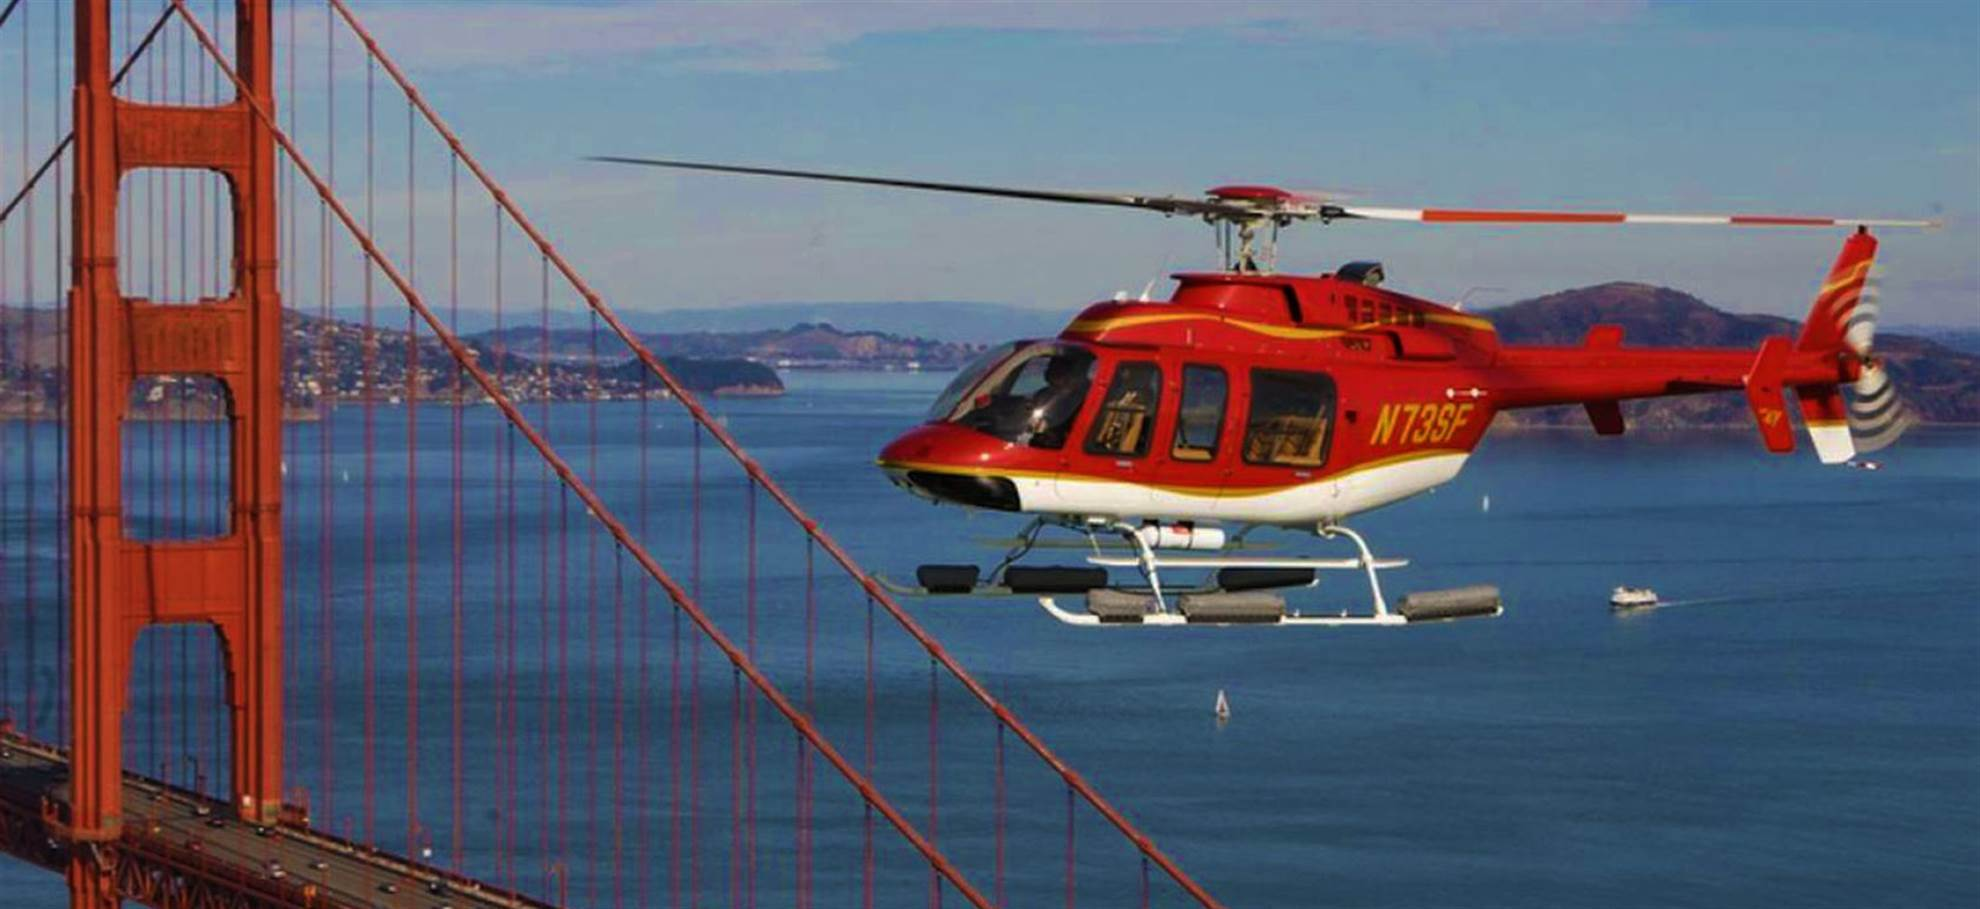 Grand City Tour and Helicopter Tour